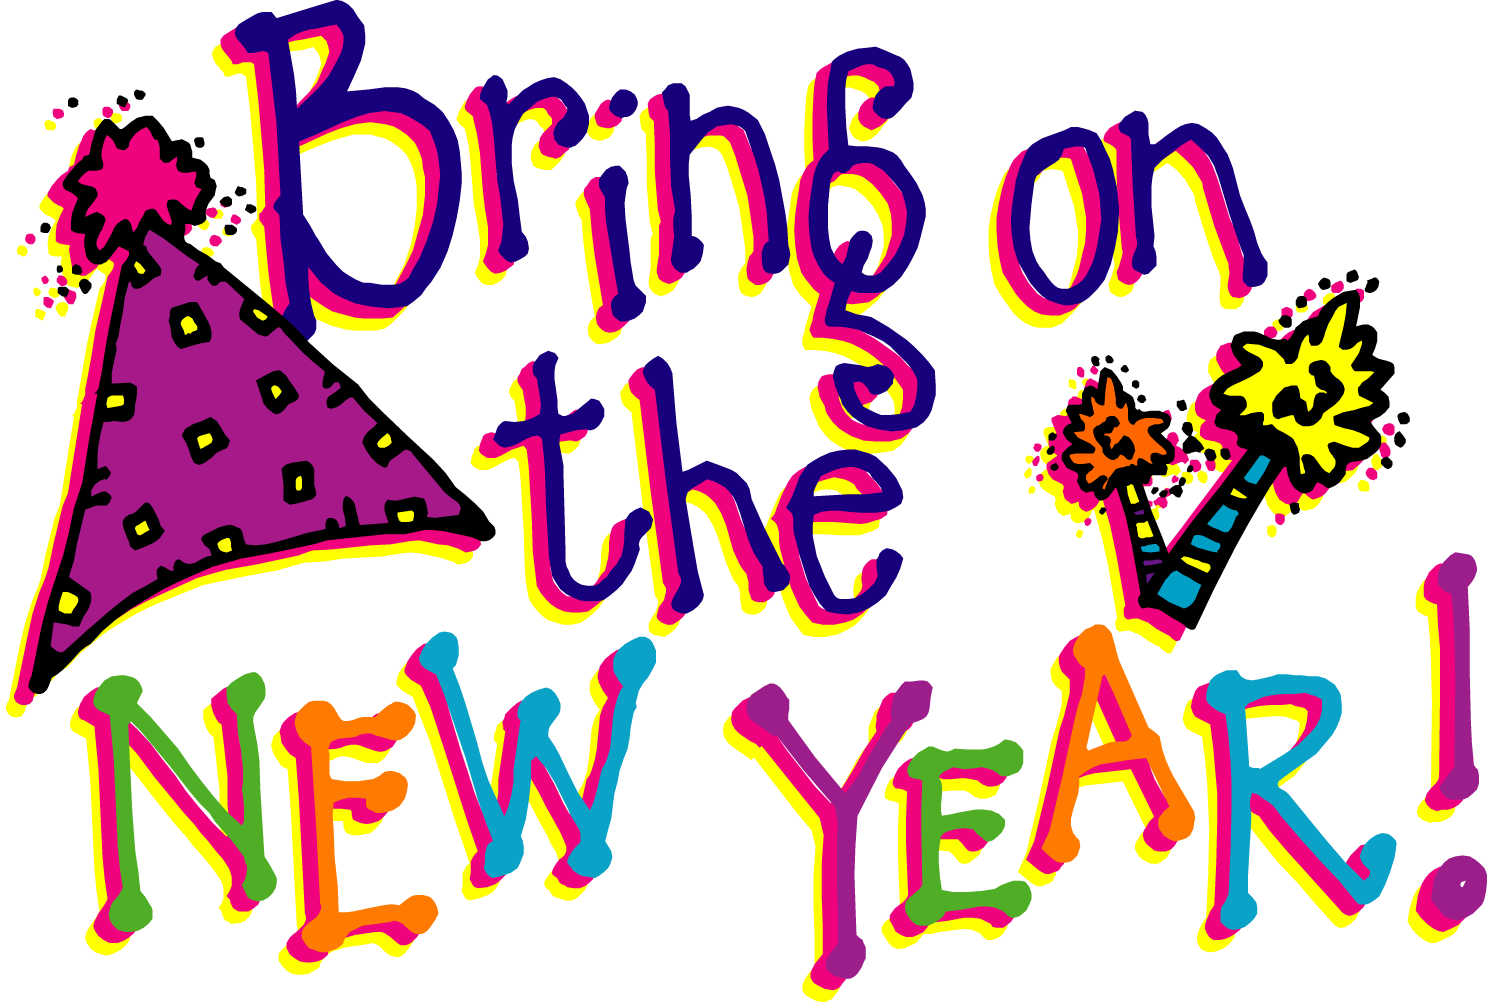 Happy New Year Clipart - .-Happy new year clipart - .-10